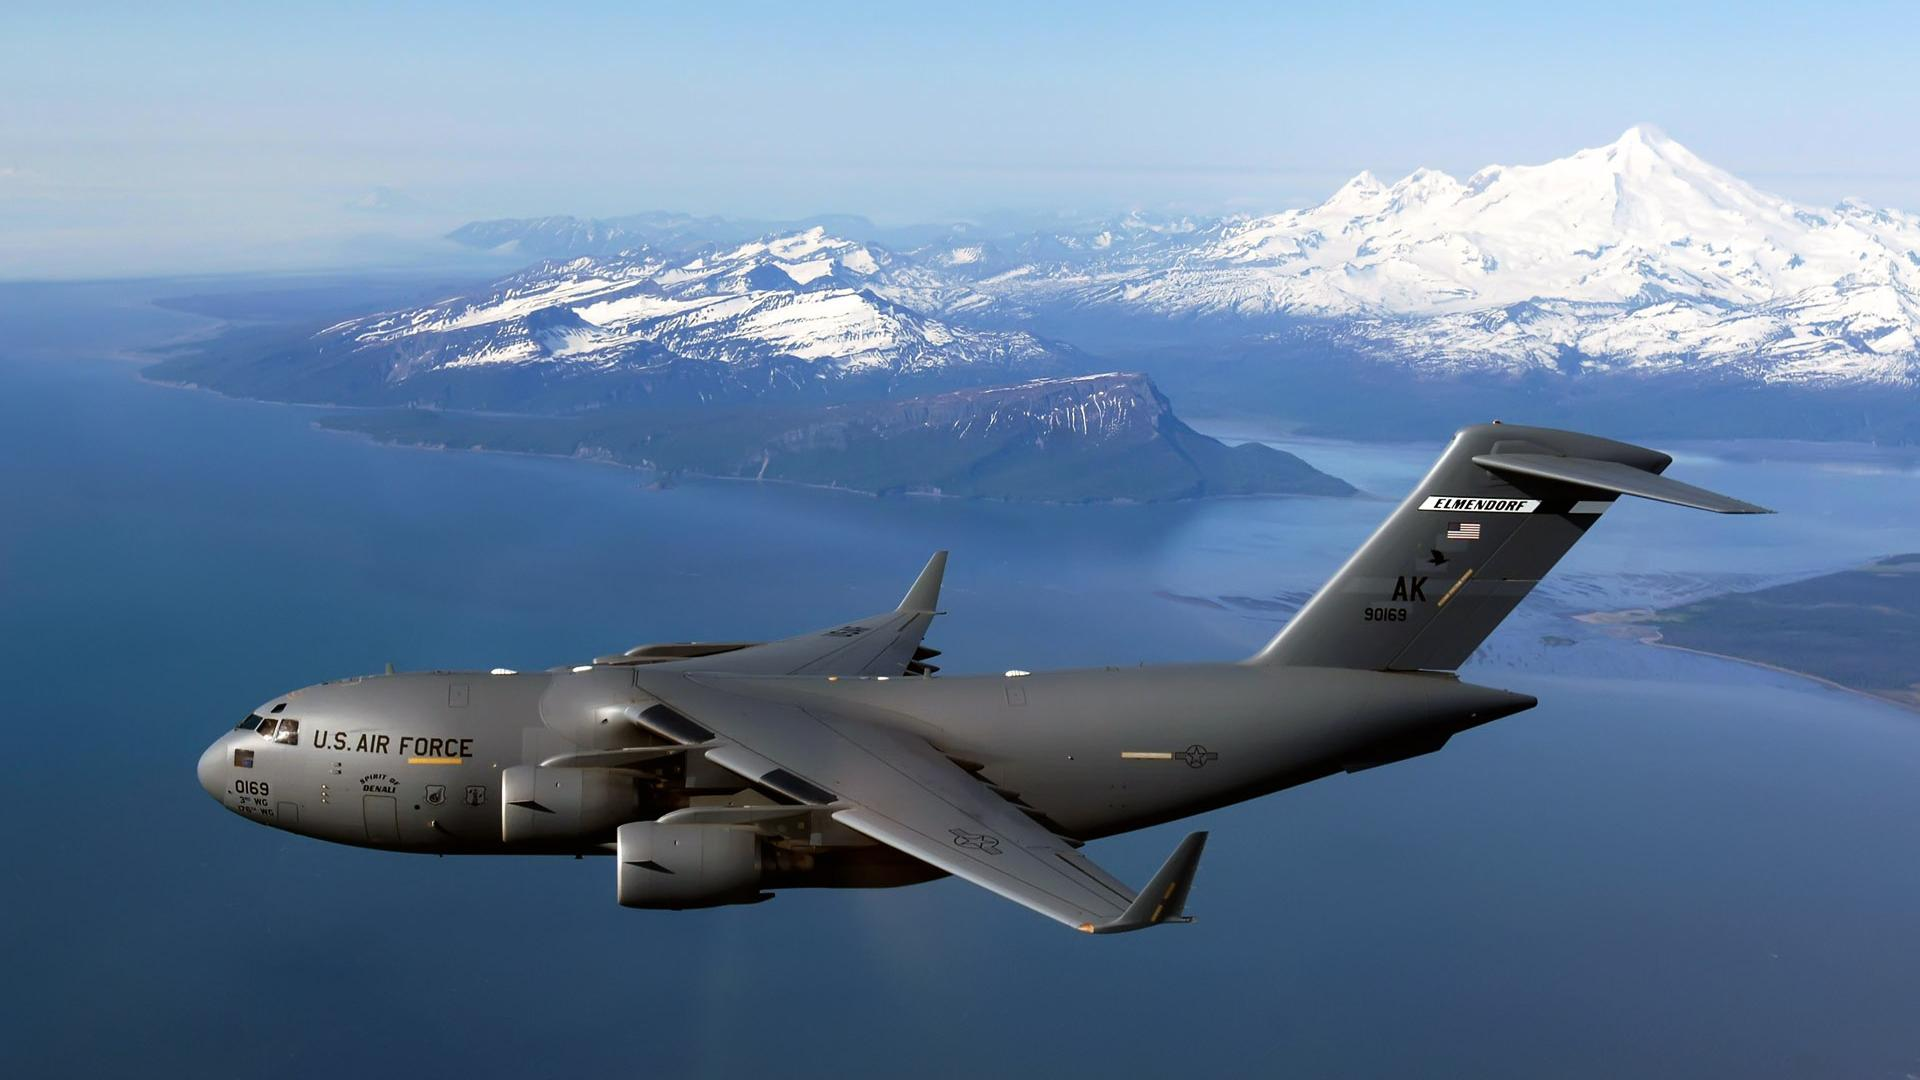 United States Air Force Wallpaper